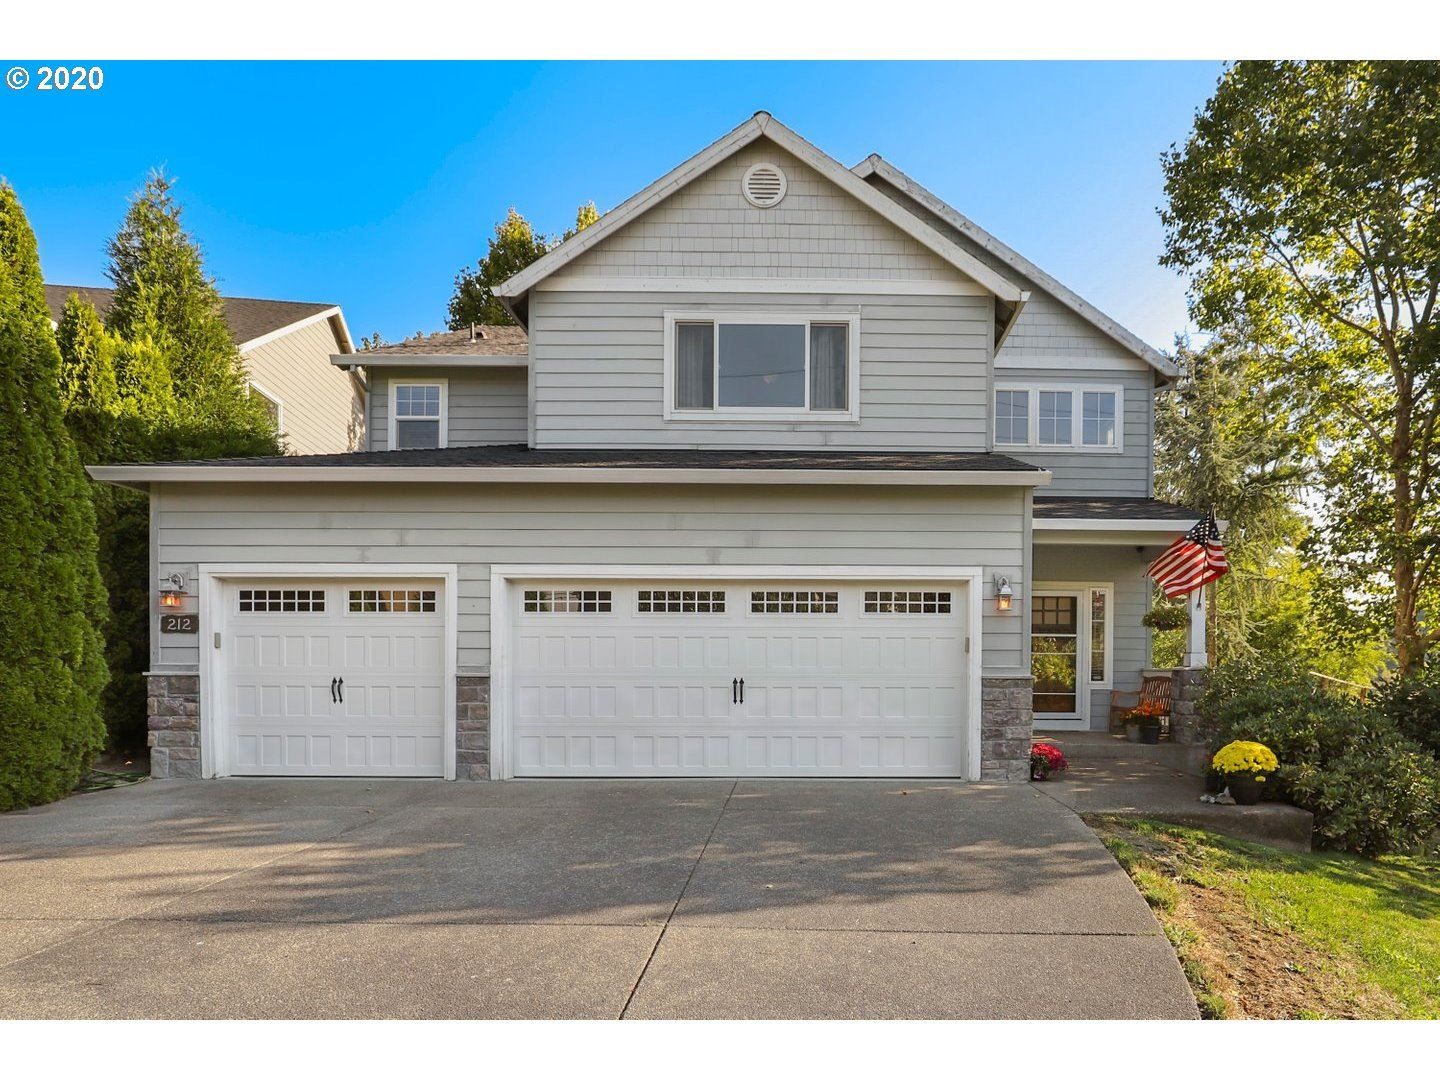 212 NW EVENSONG PL, Portland, OR 97229 - MLS#: 20030076